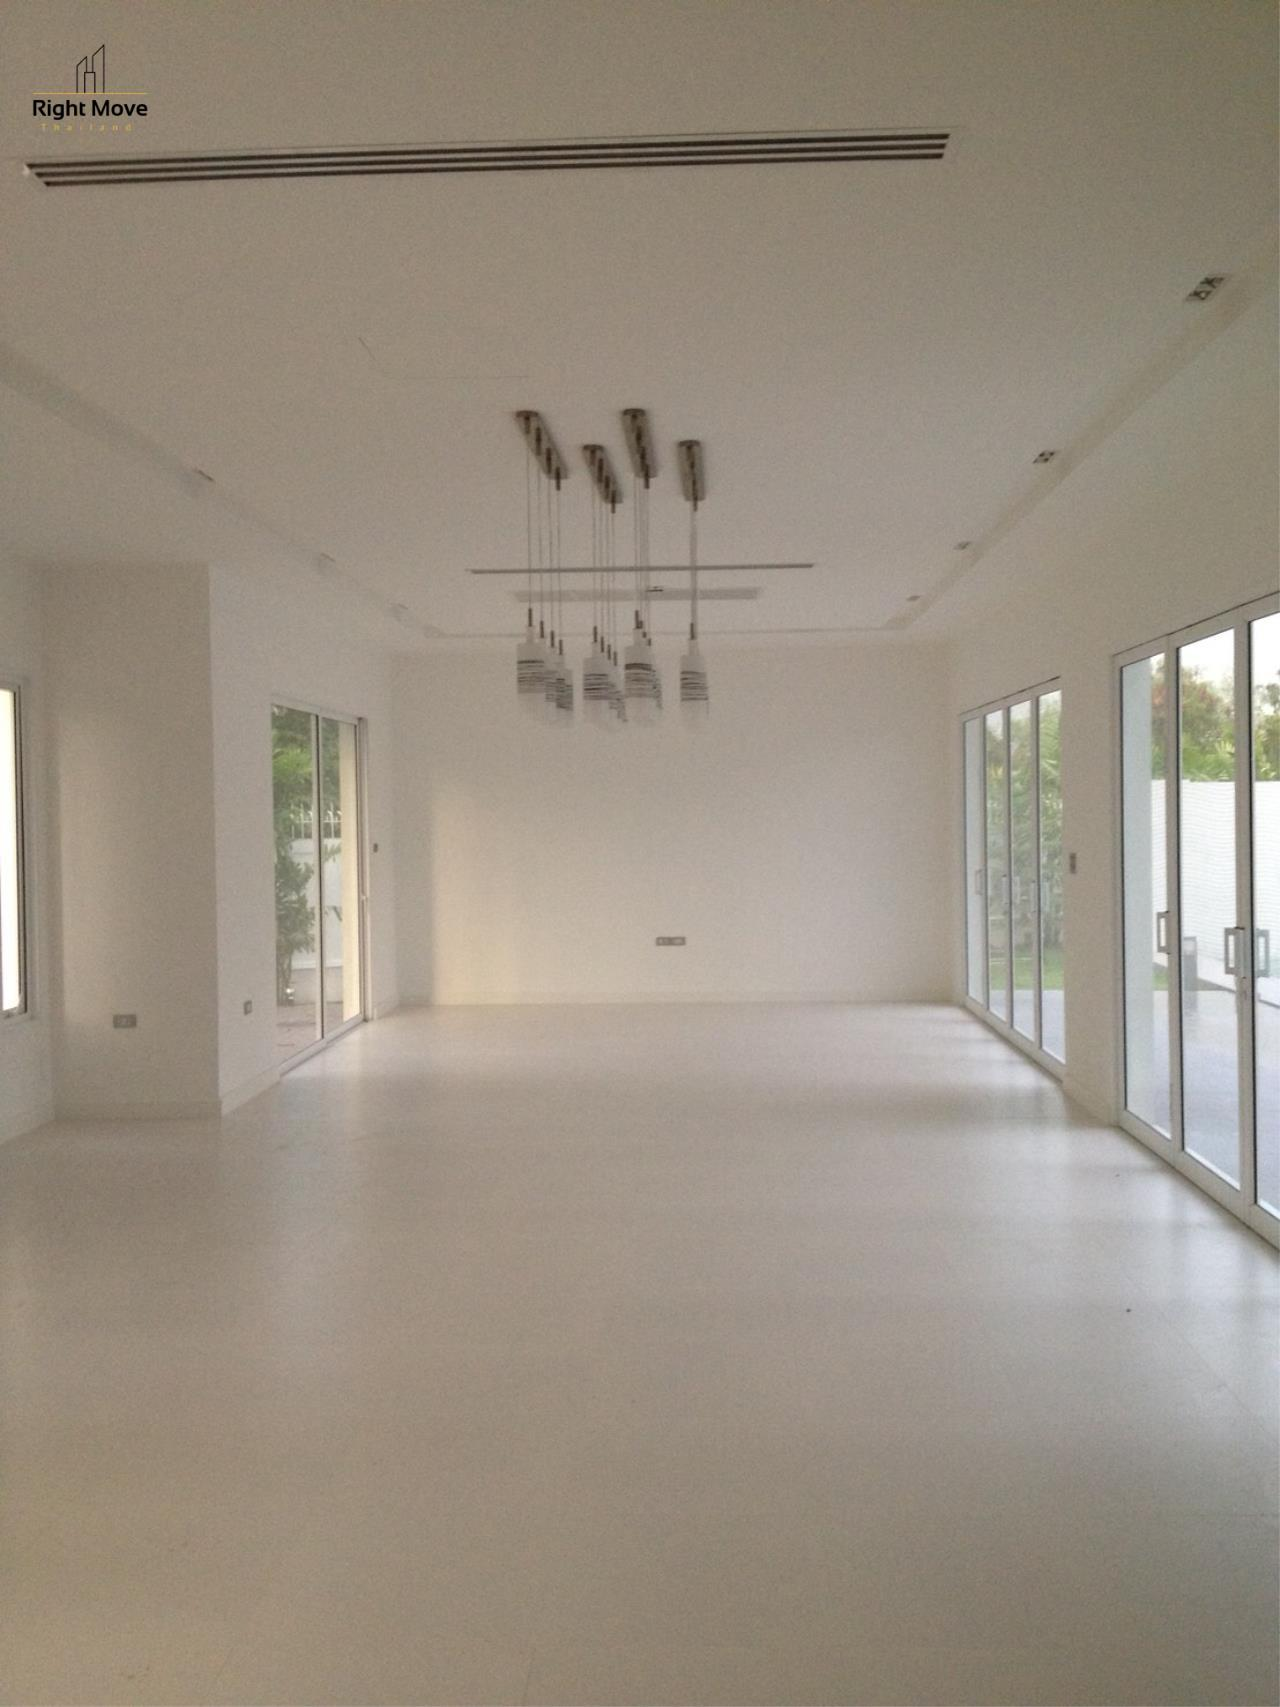 Right Move Thailand Agency's HR963 House with private pool - For Rent 180,000 THB 4 Bedrooms 450 Sqm 200 Sqw 5